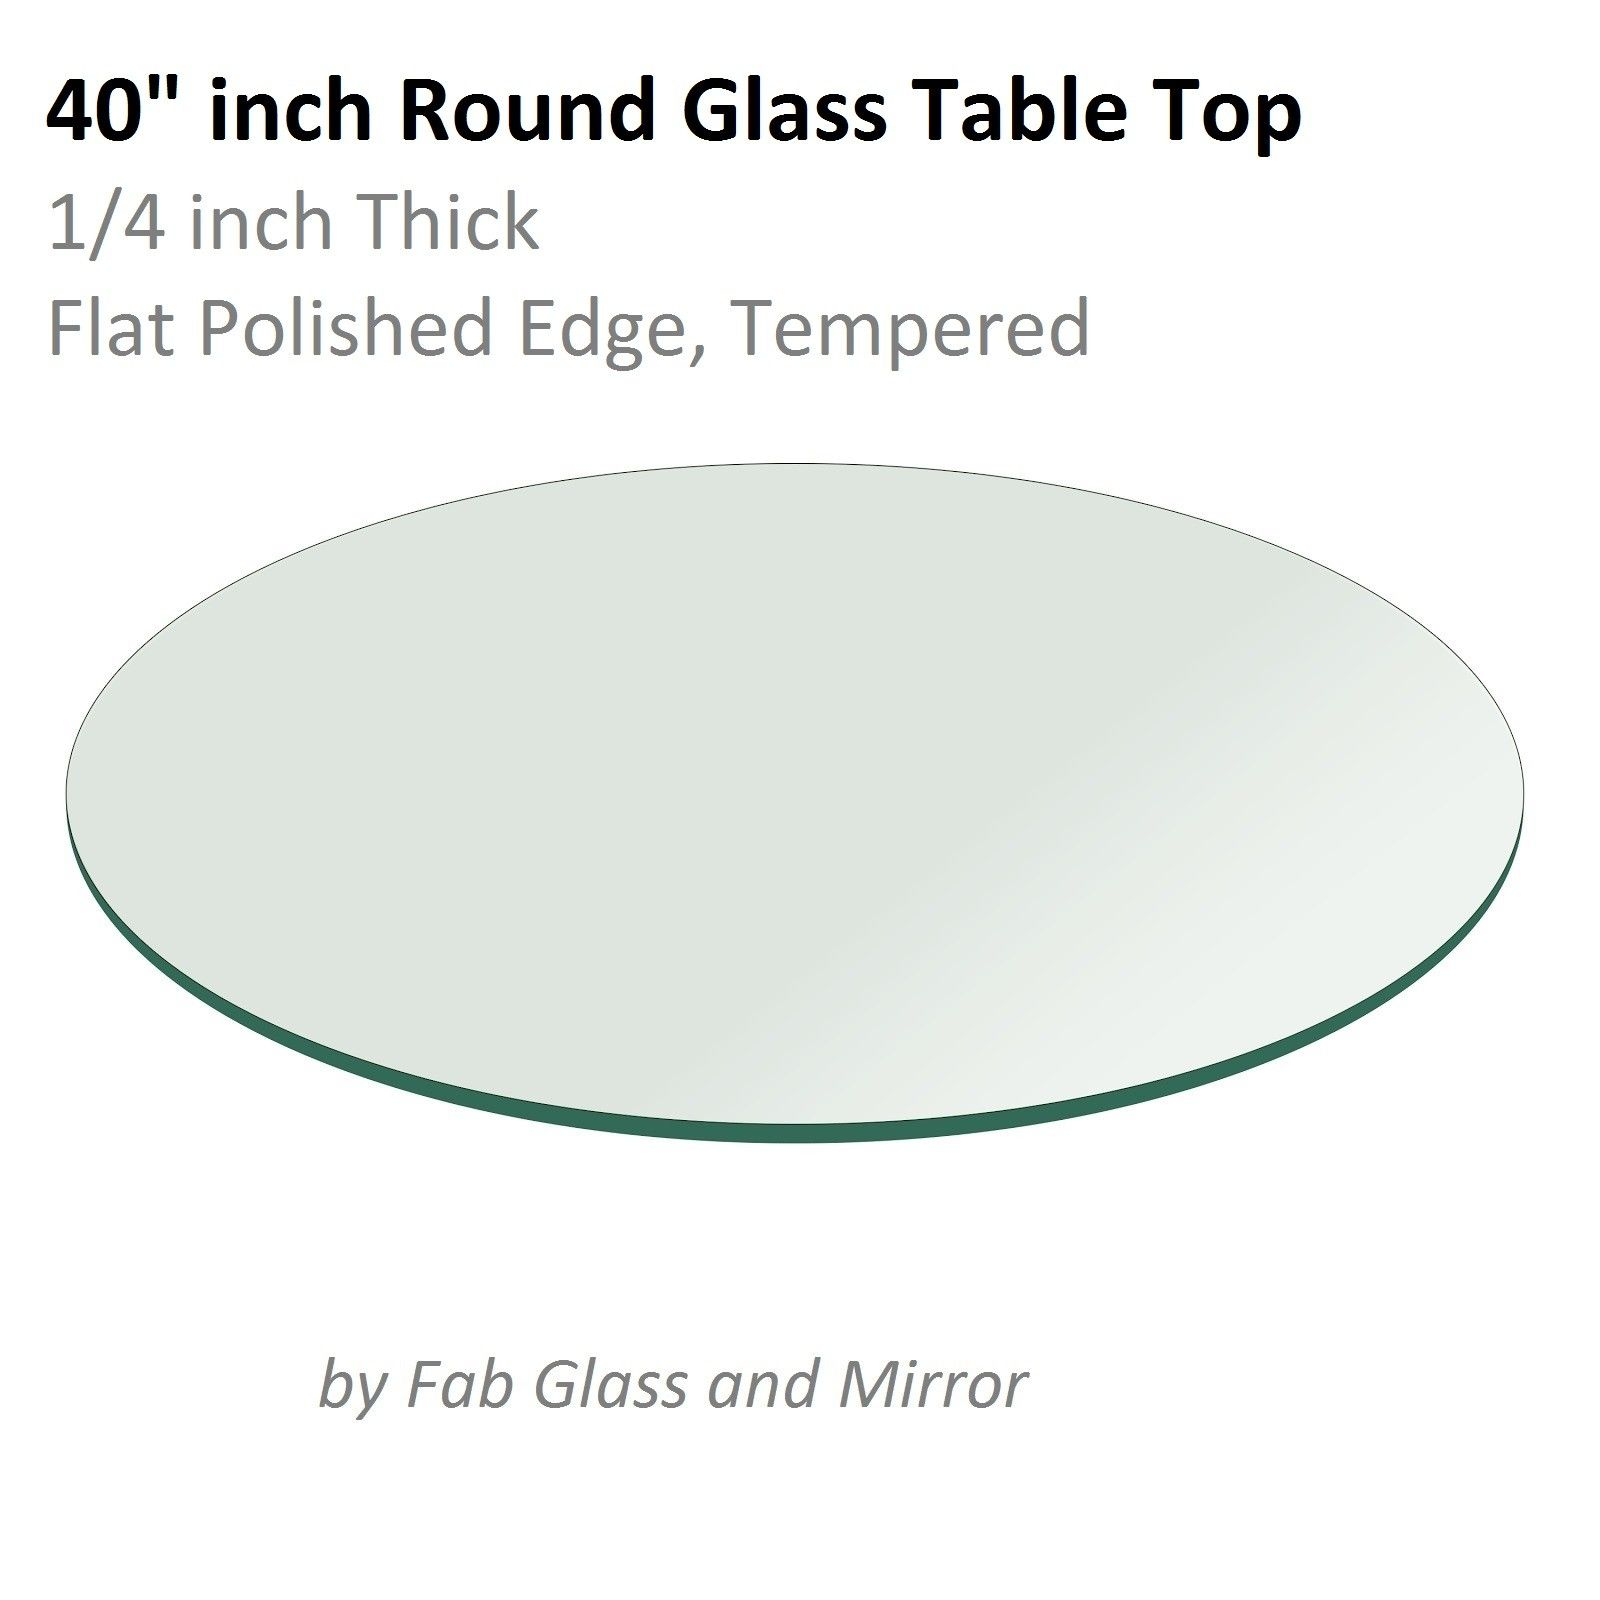 Gl Table Top 40 Inch Round Flat Polish Tempered